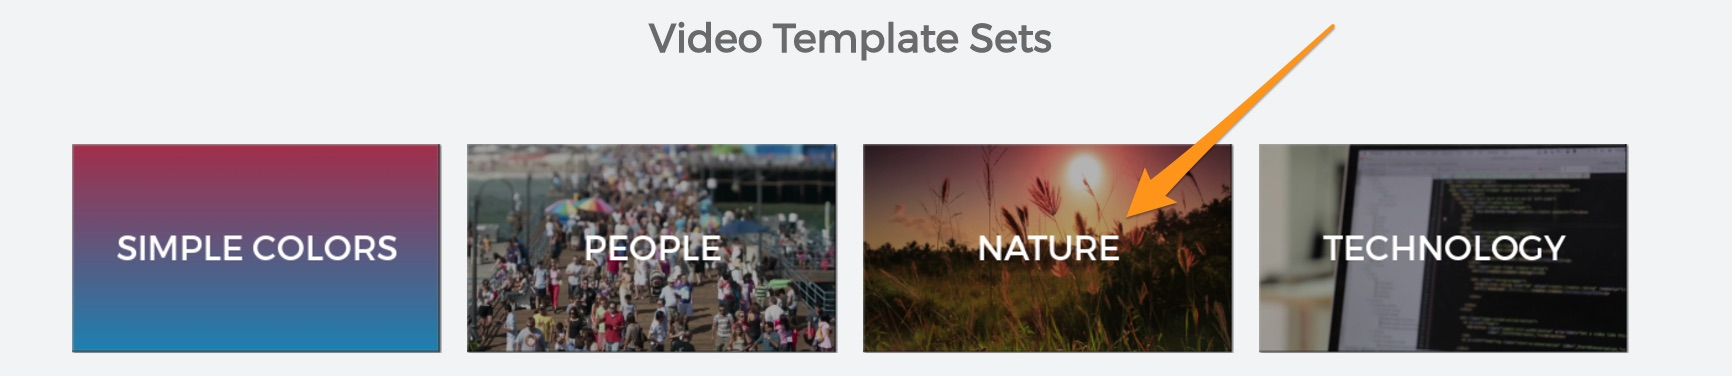 Step_3_-_Log_into_vid_one__Select_from_their_template_set_or_create_your_own_video__In_this_case_I_clicked_on_Nature.jpg